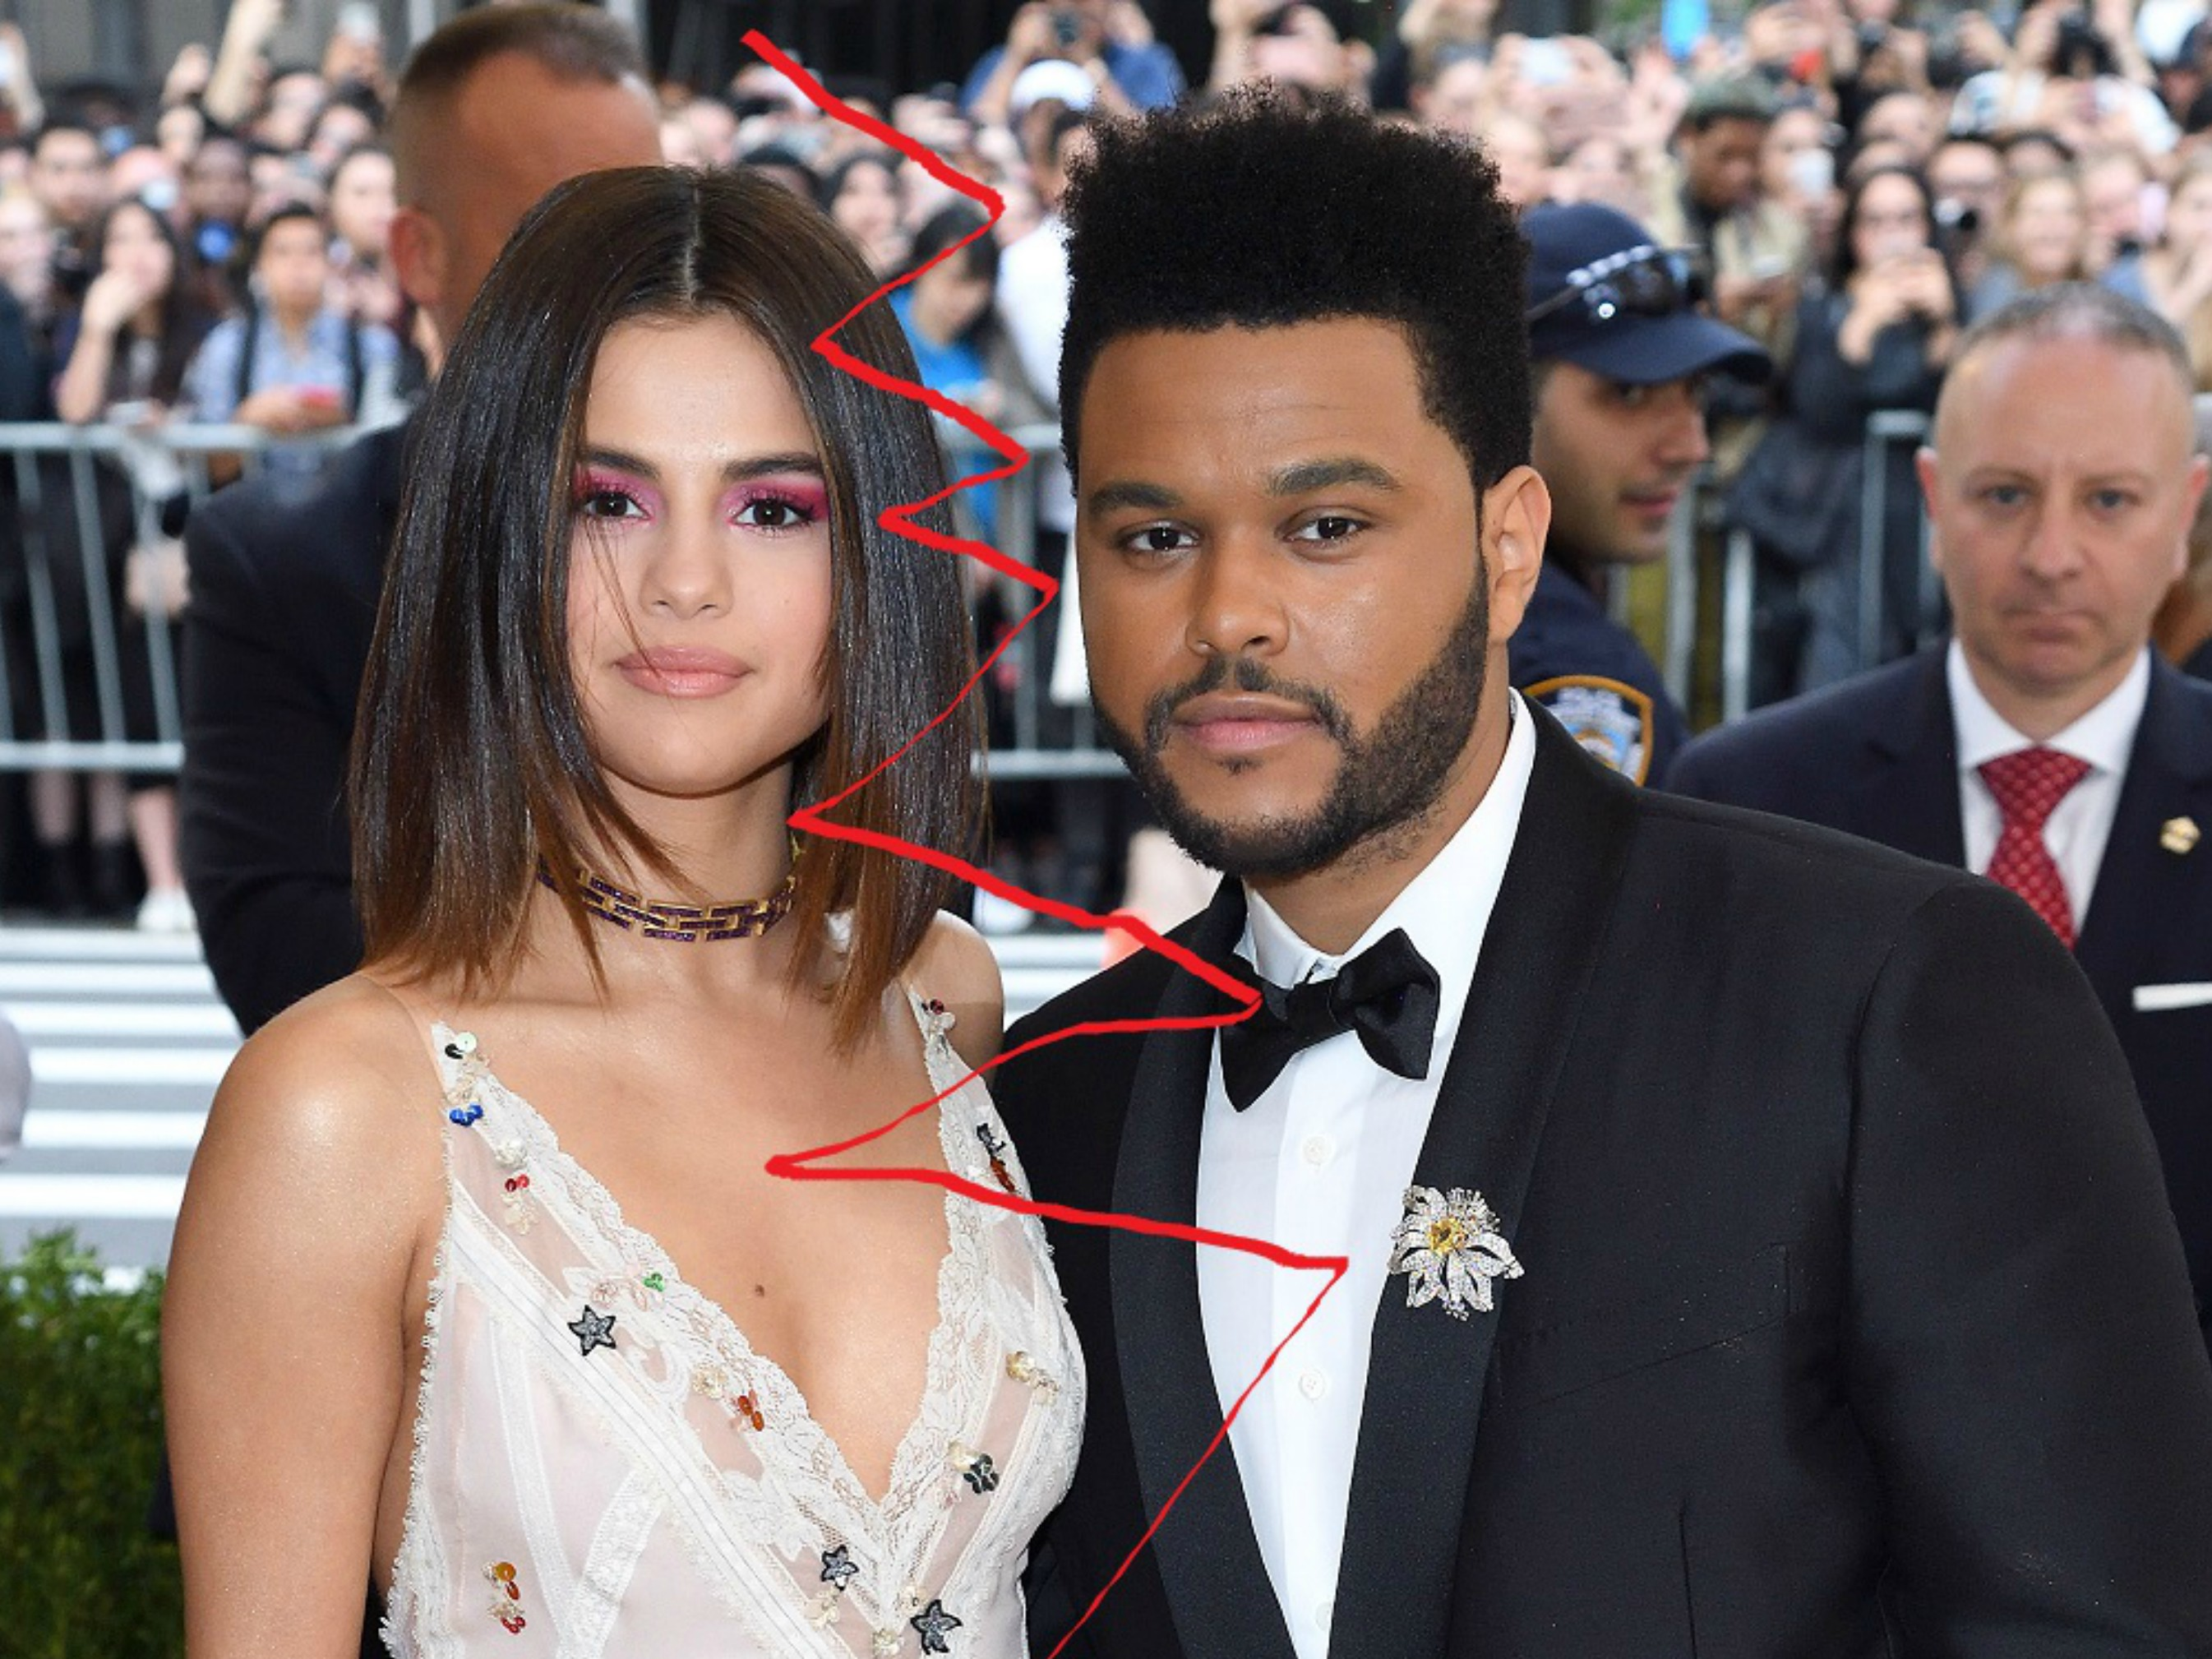 CelebritySelena Gomez unfollows The Weeknd on Instagram The plot